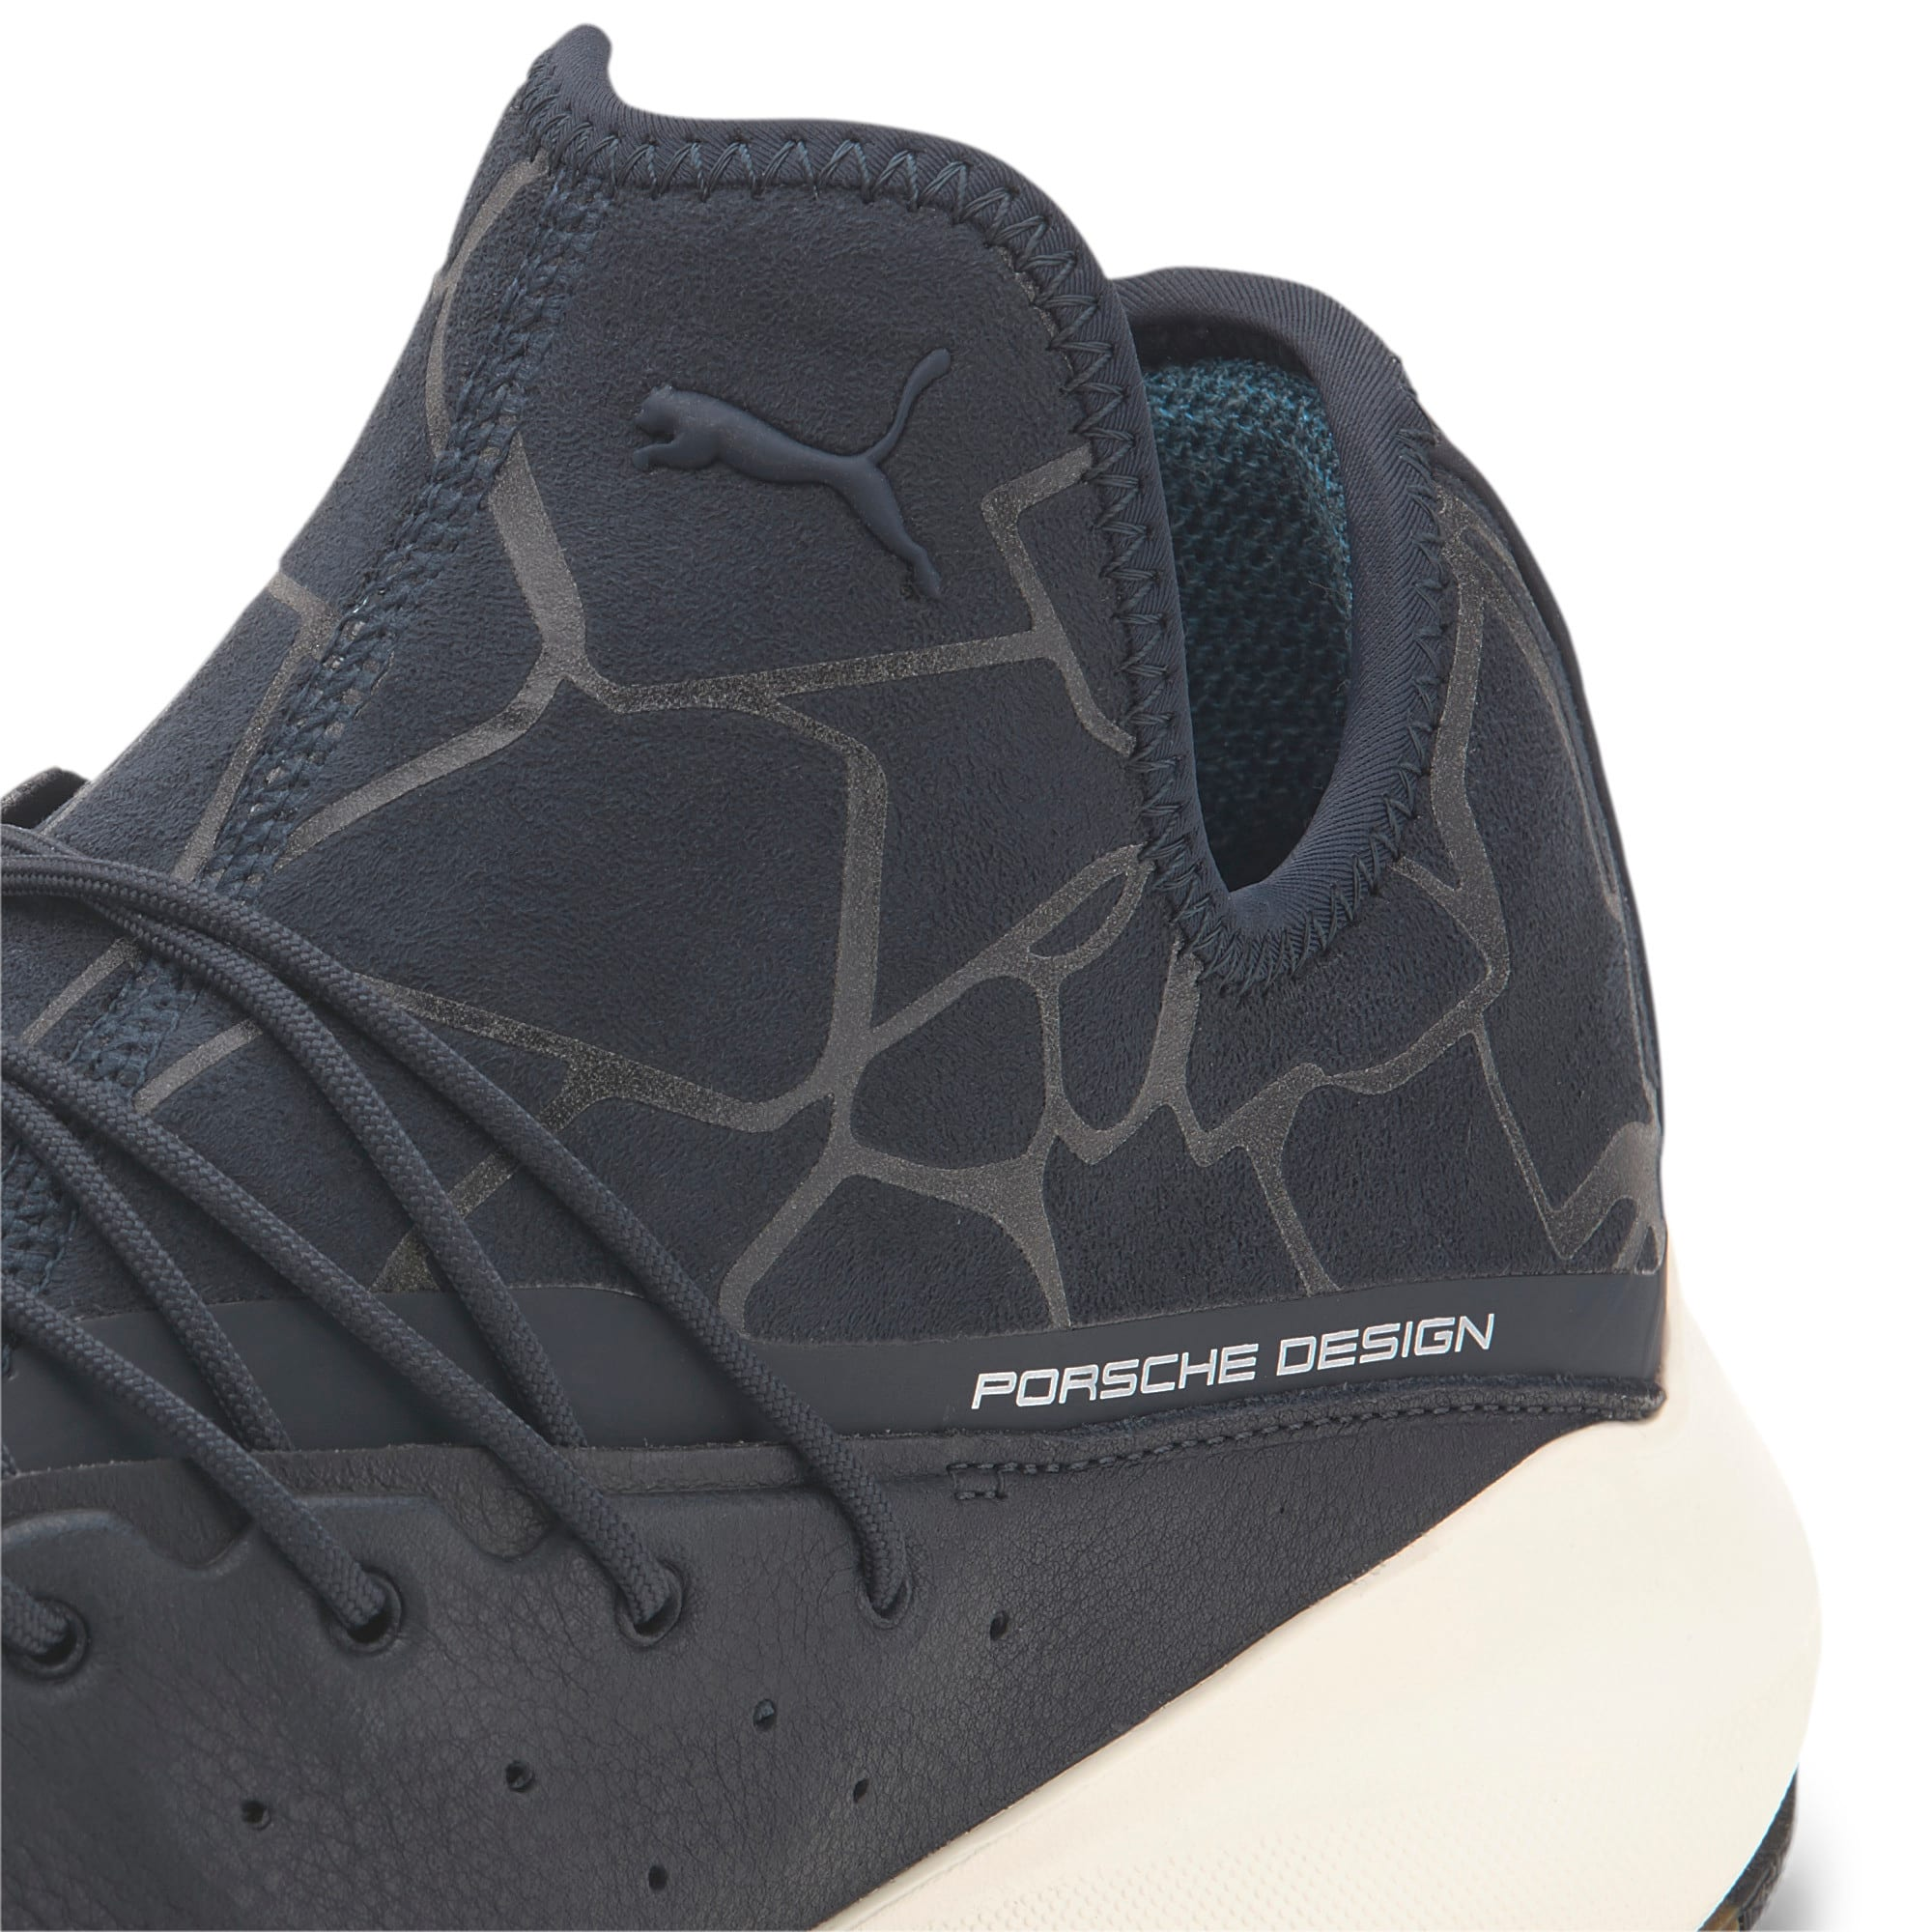 Thumbnail 8 of Porsche Design Evo Cat II Men's Training Shoes, Navy Blazer-Navy-WhisperW, medium